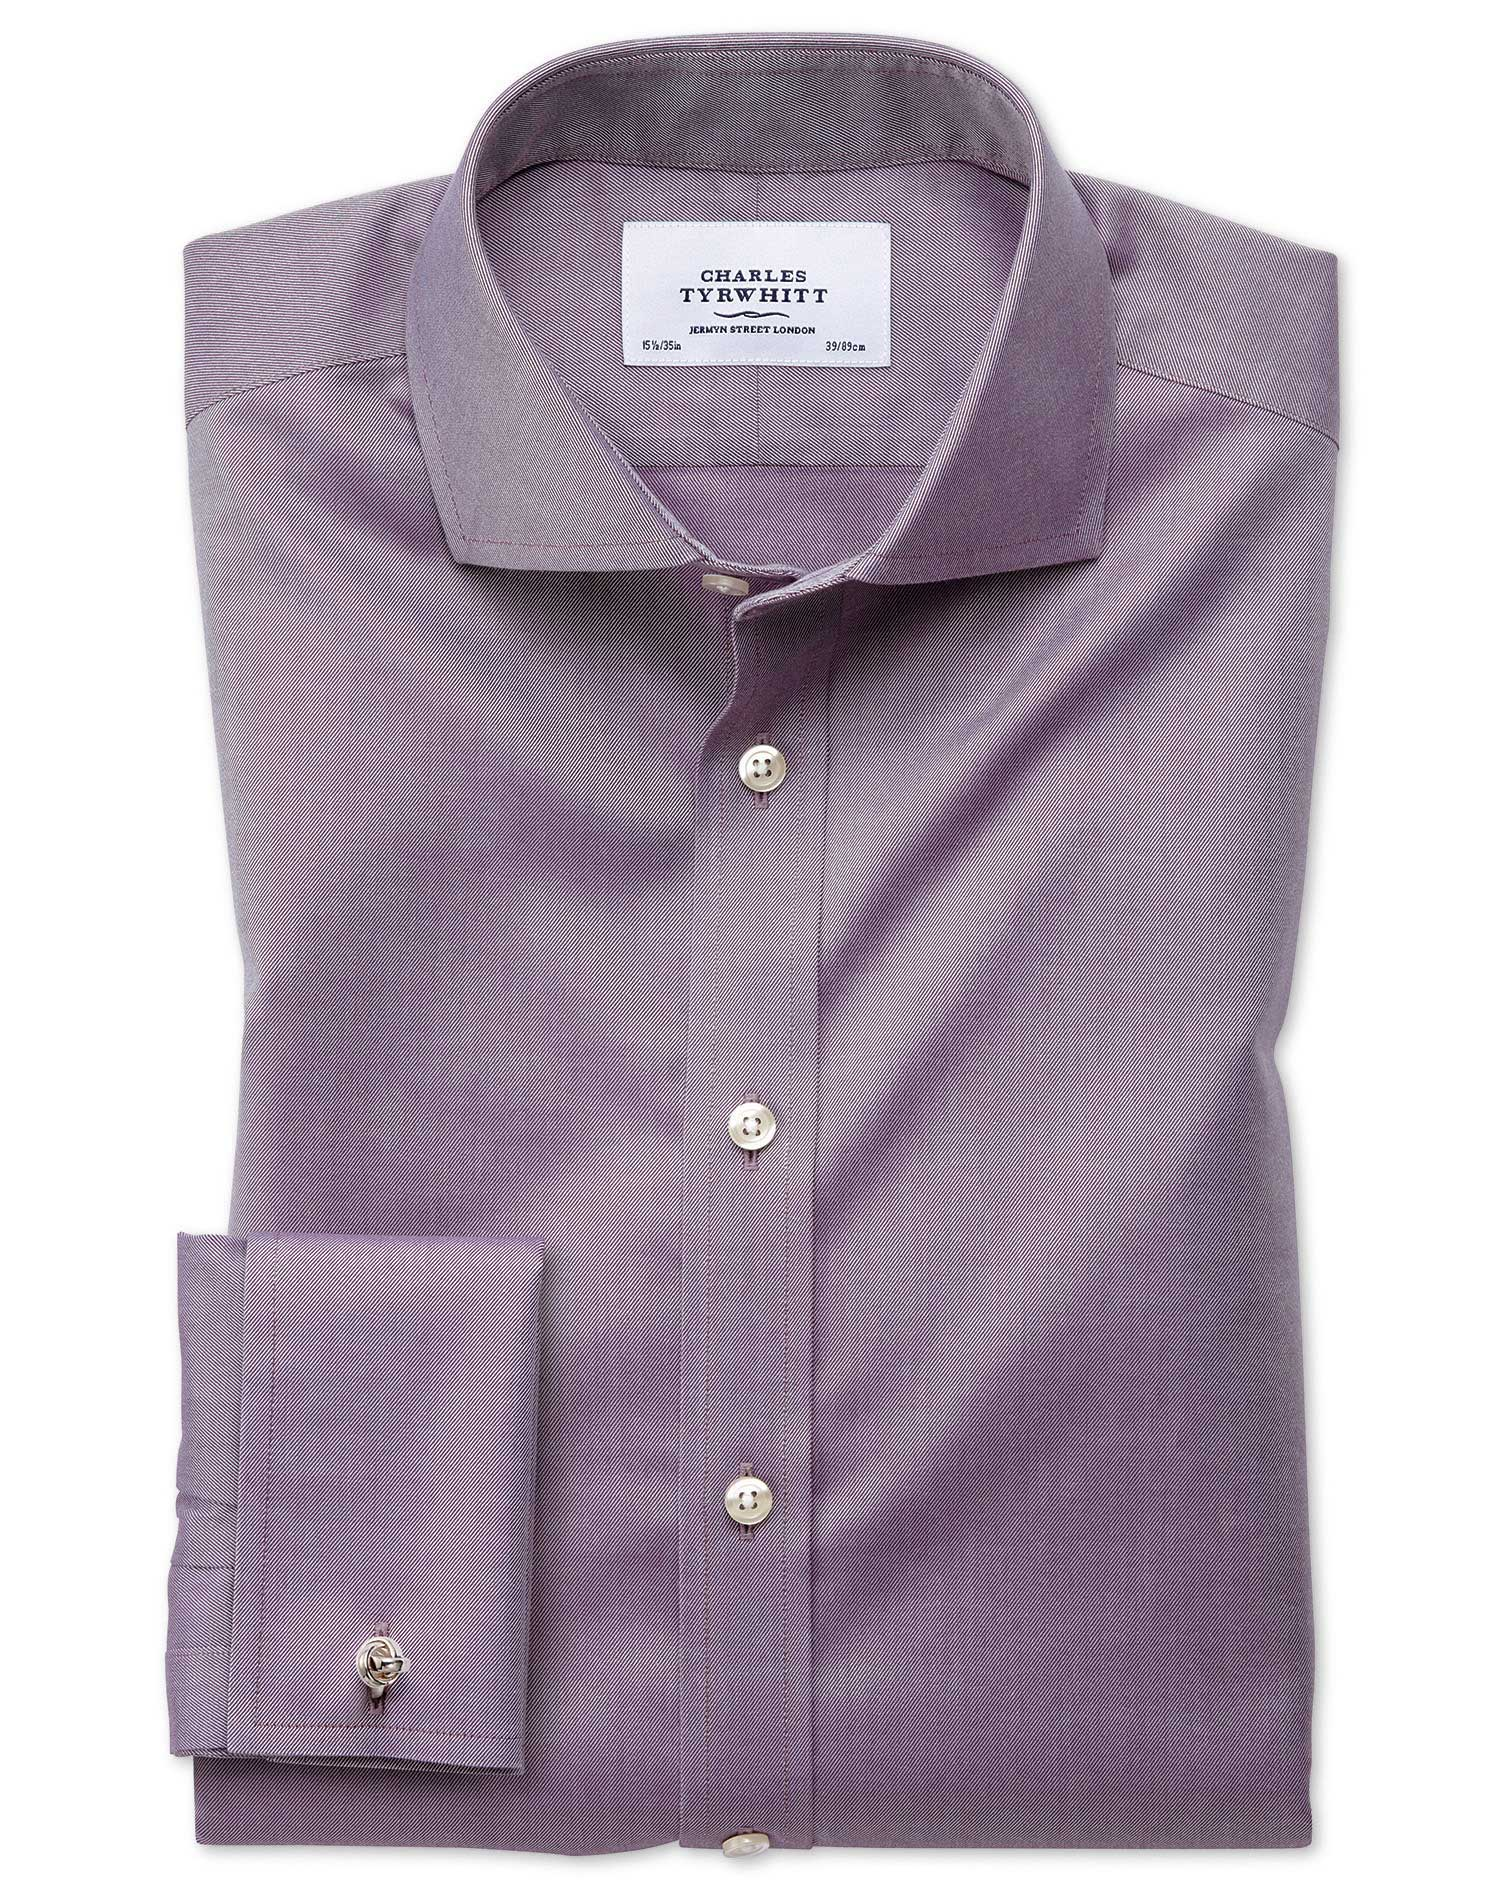 Extra Slim Fit Cutaway Non-Iron Twill Dark Purple Cotton Formal Shirt Double Cuff Size 14.5/33 by Ch